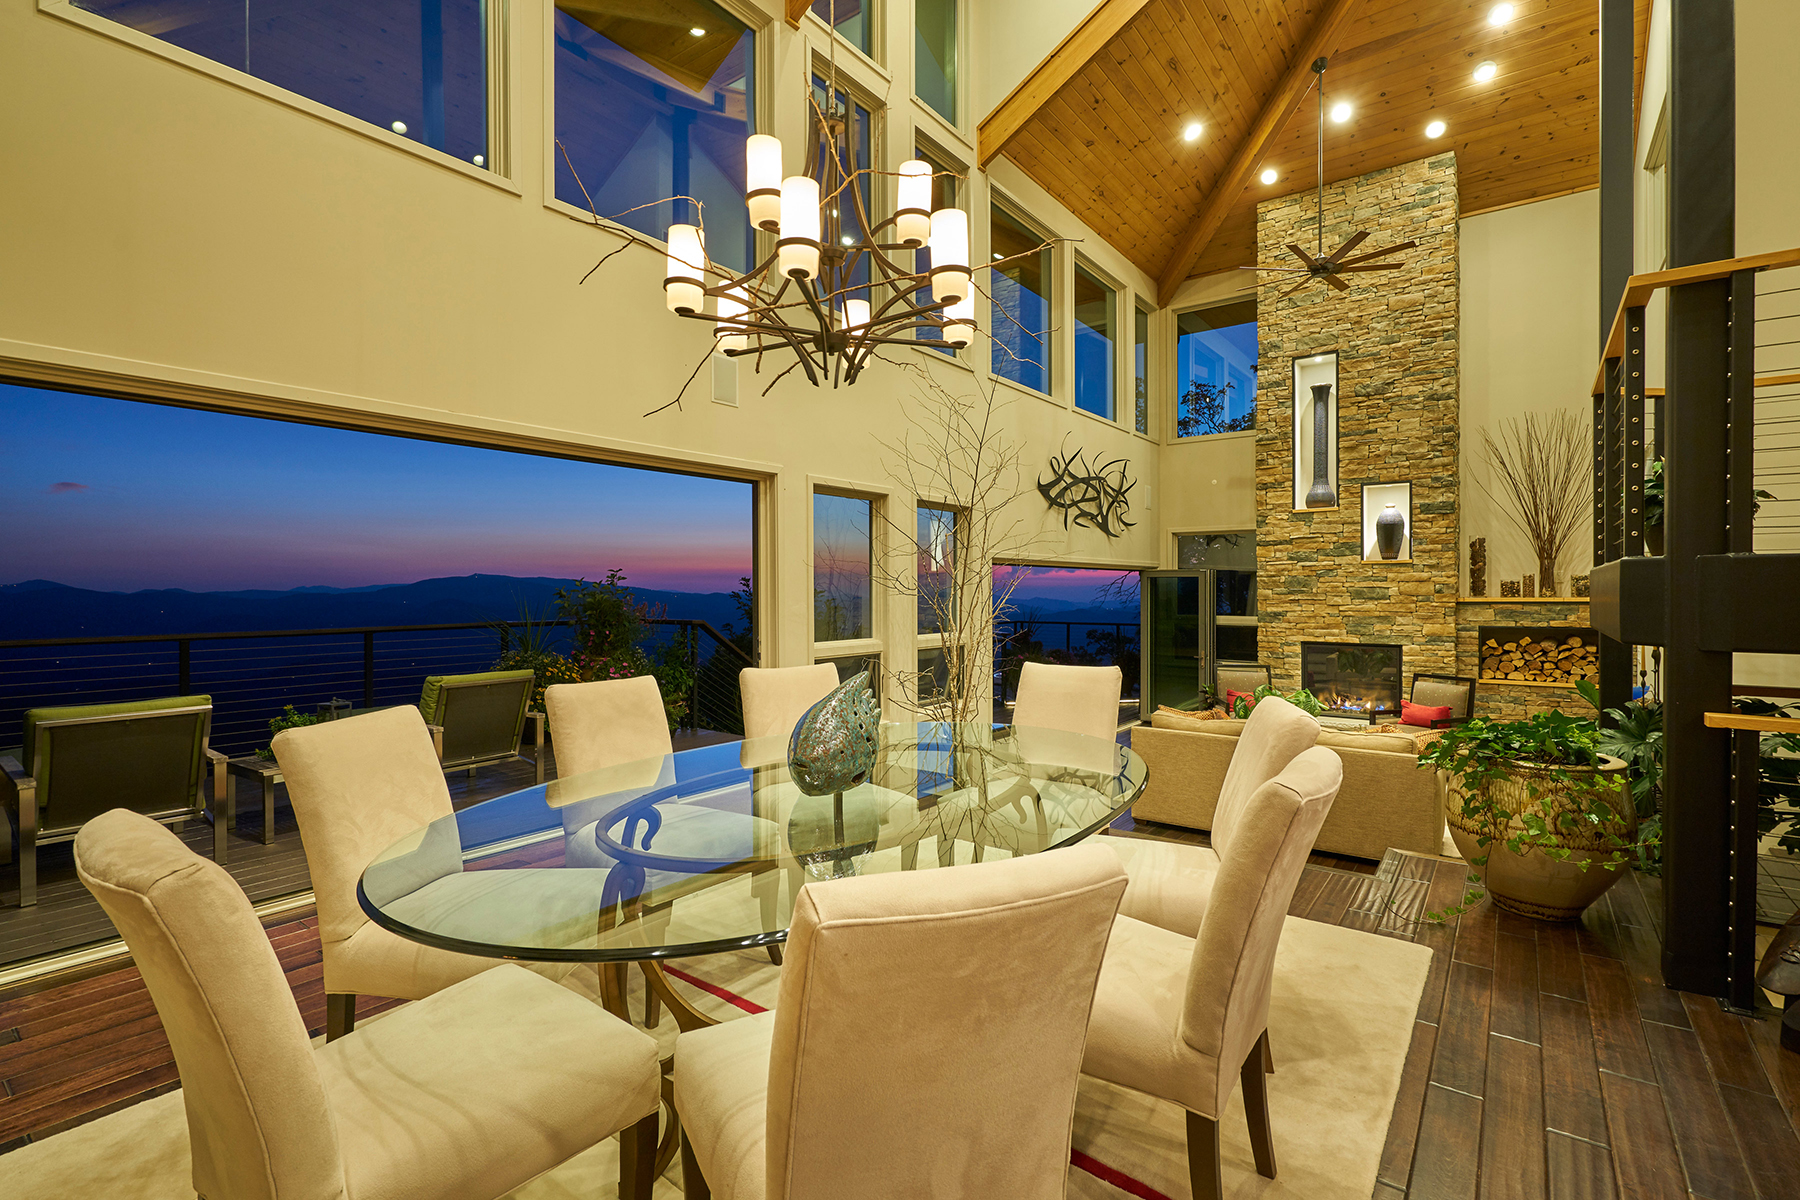 Single Family Homes for Active at WOODLAND SPRINGS - BOONE 870 Saddle Rd Boone, North Carolina 28607 United States